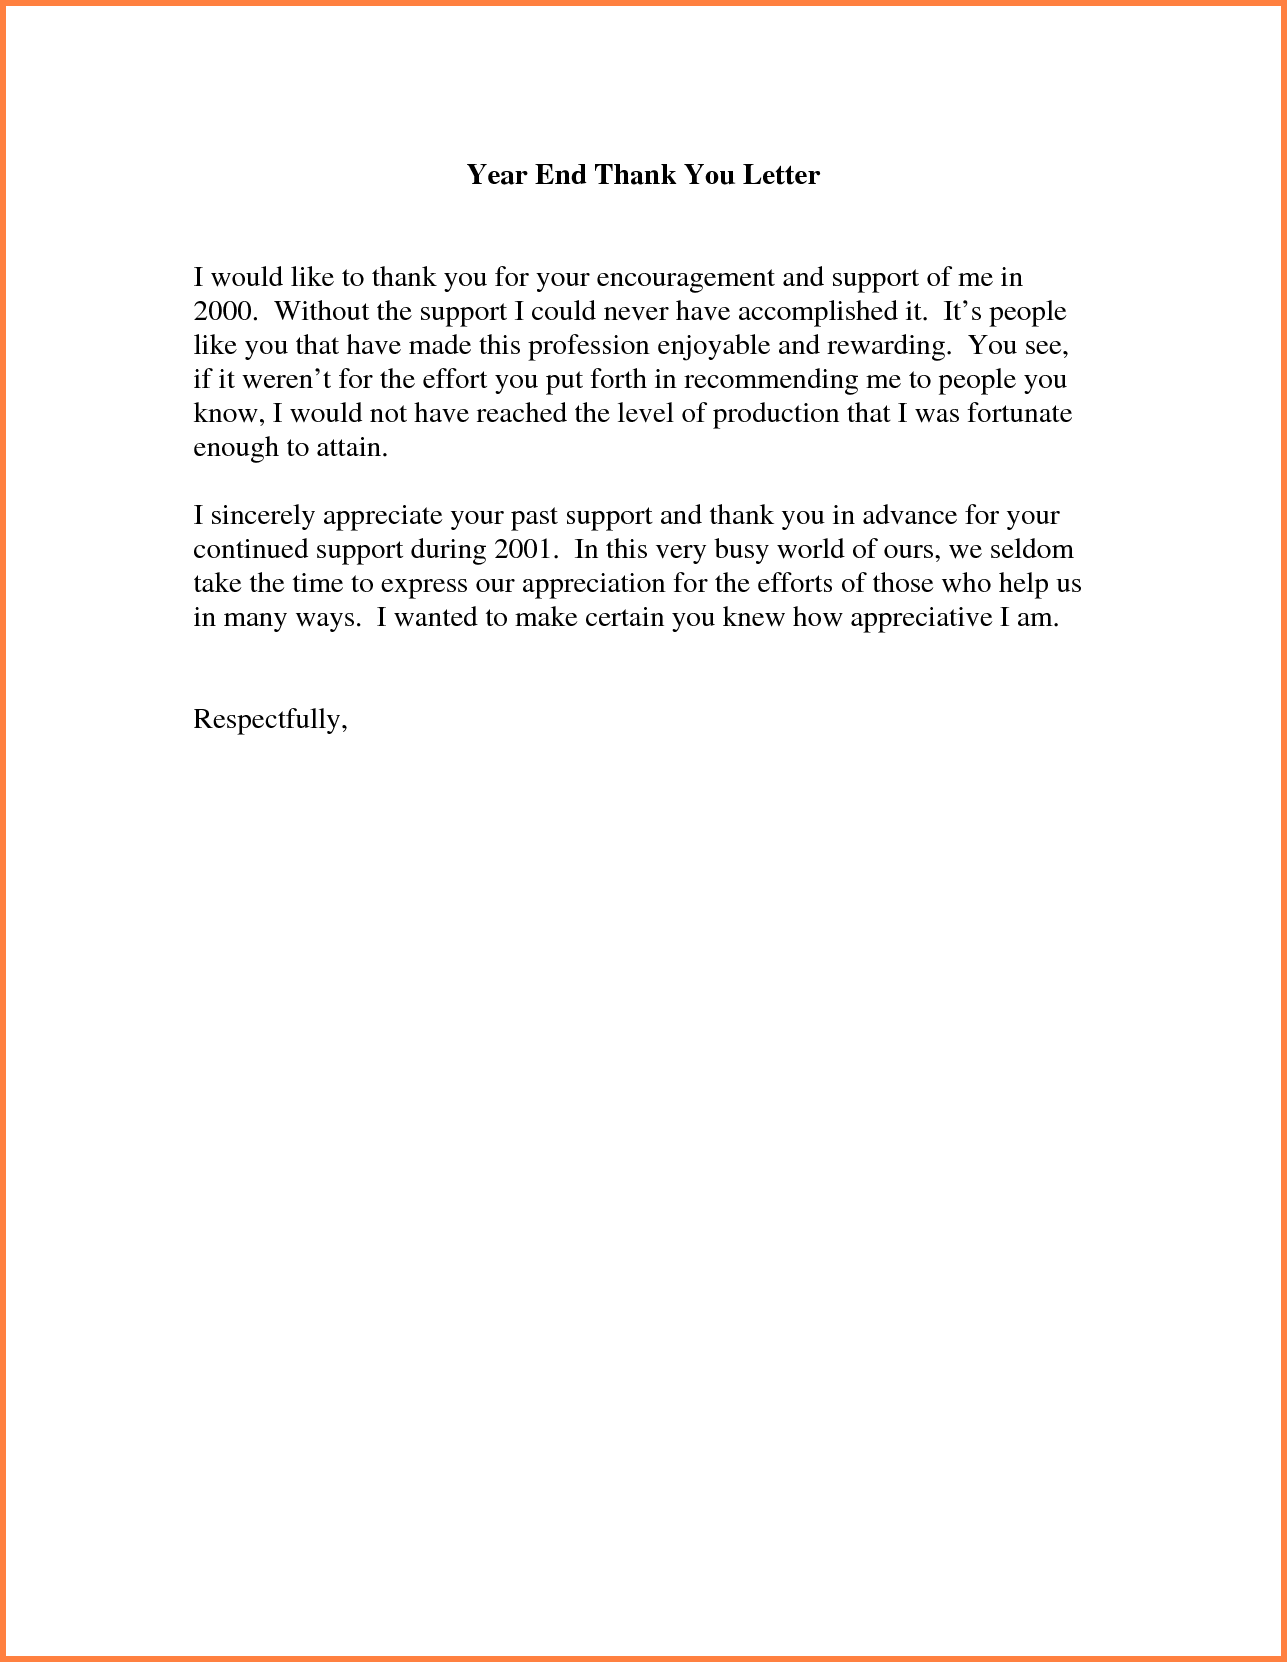 Letter Sales Report Template Sample Thank You Ending Appreciation